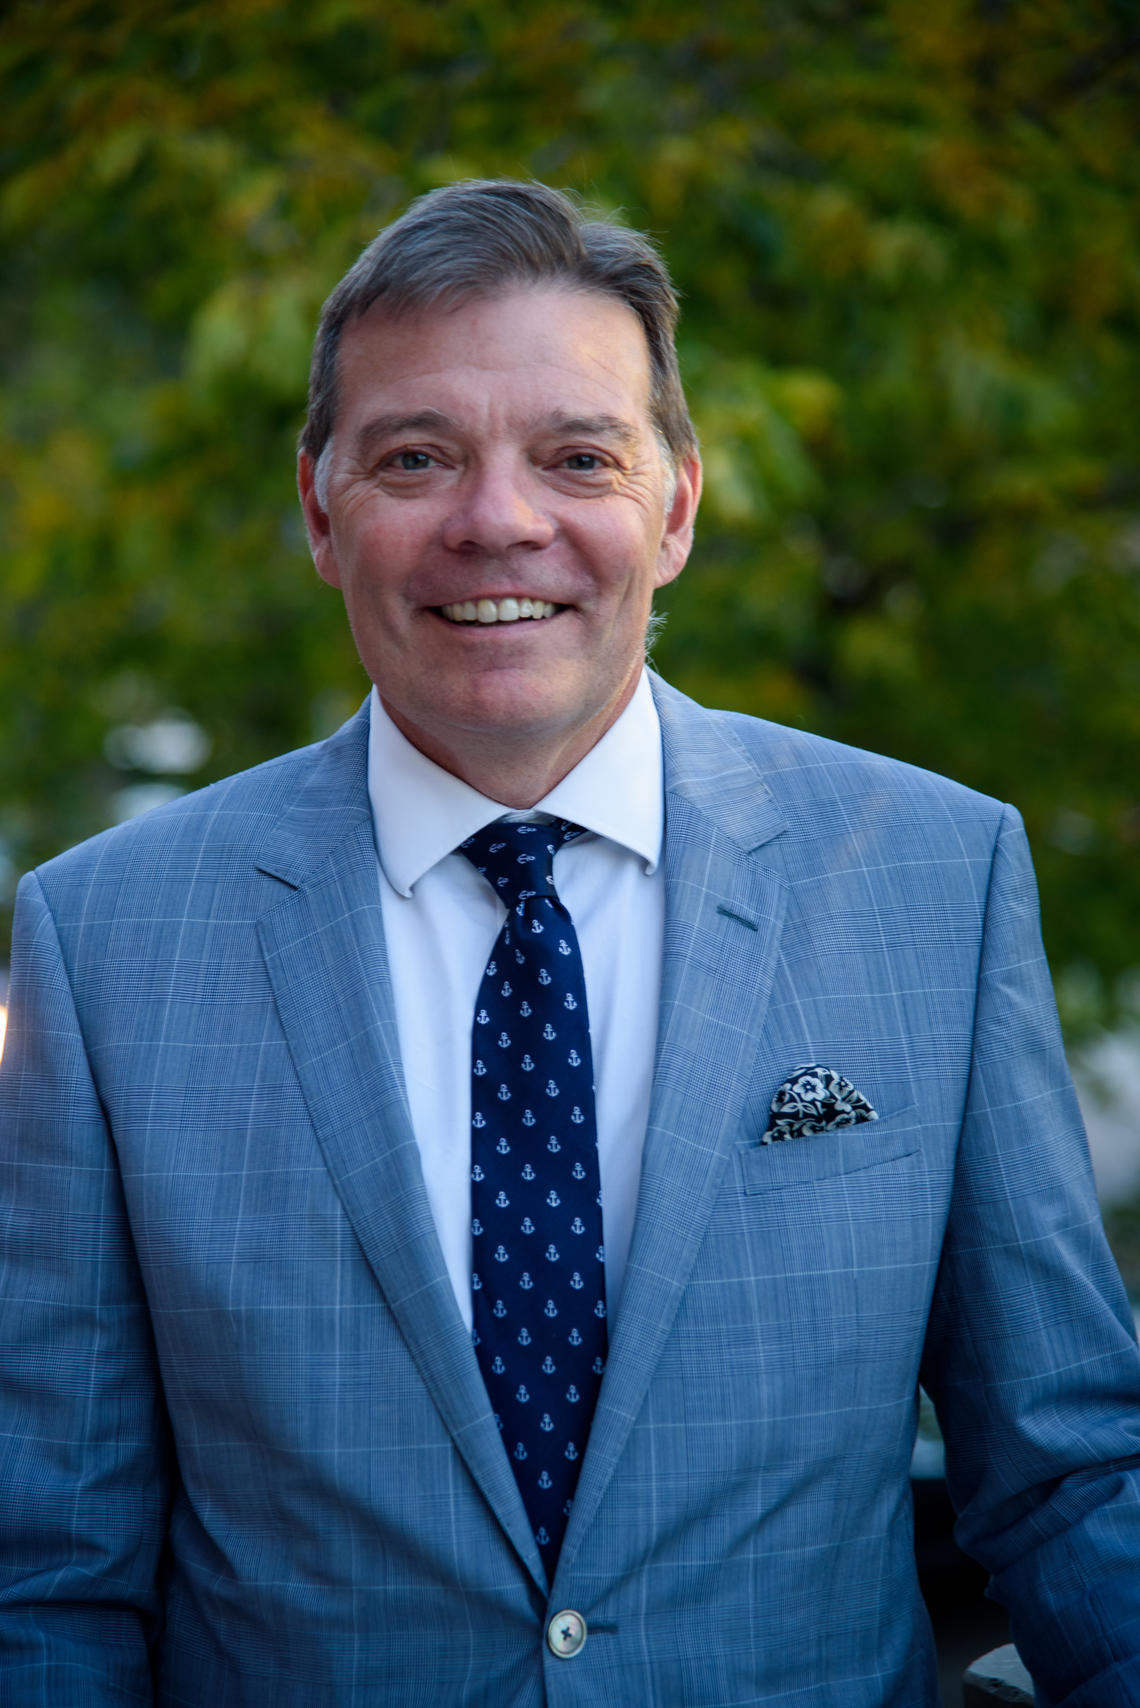 Faculty of Arts Dean Richard Sigurdson poses in a headshot. He is wearing a suit and smiling at the camera. Behind him is green foliage.